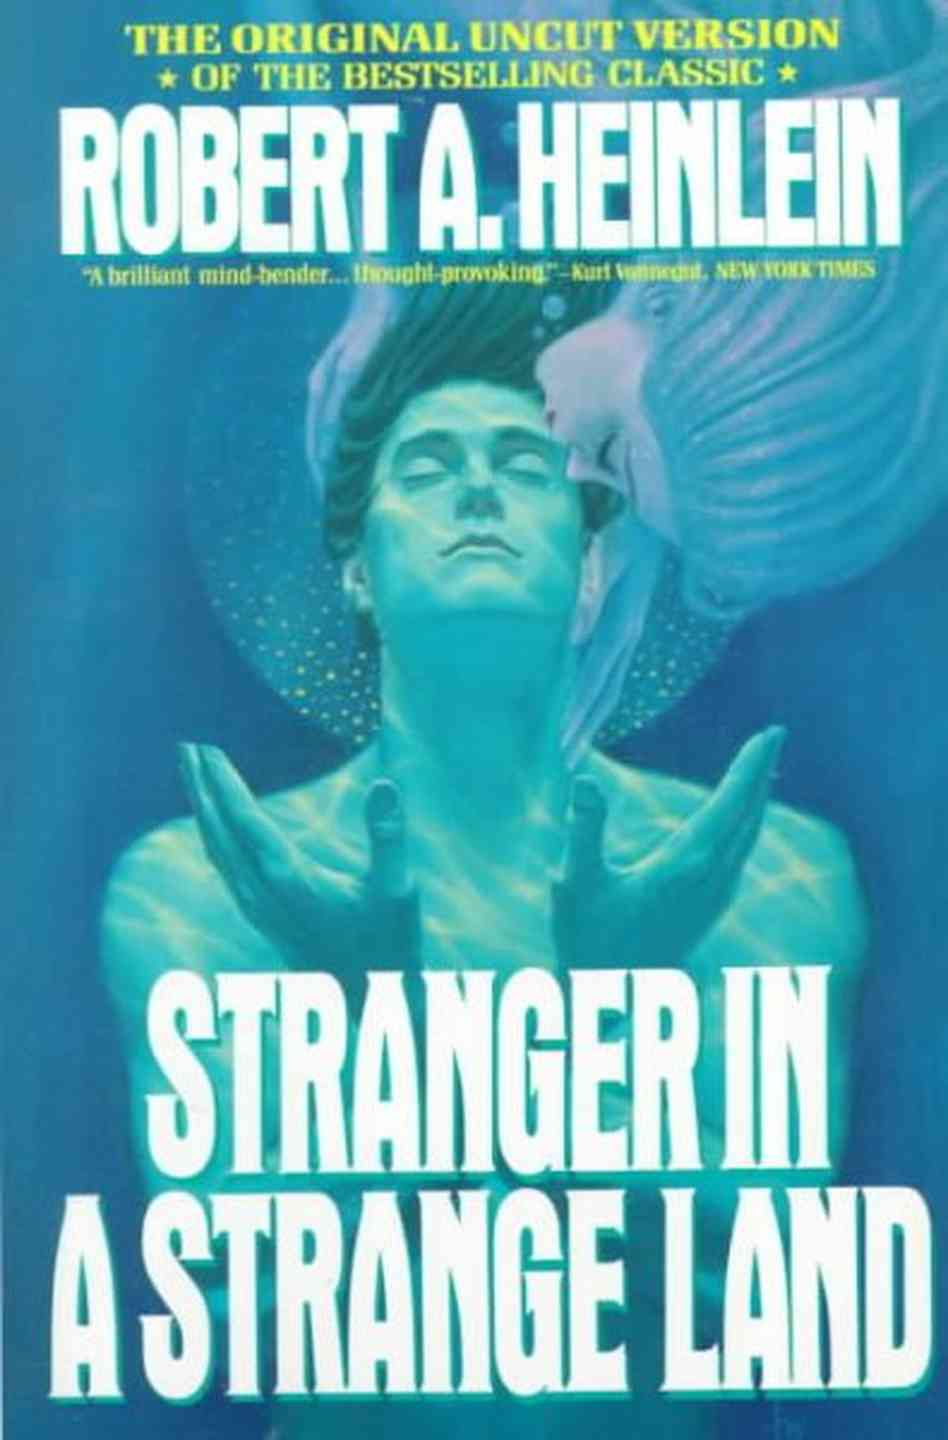 an analysis of the novel strange by robert a heinleins Stranger in a strange land is one of the after robert heinlein's death in 1988 the novel was a unique glimpse of both heinleins.